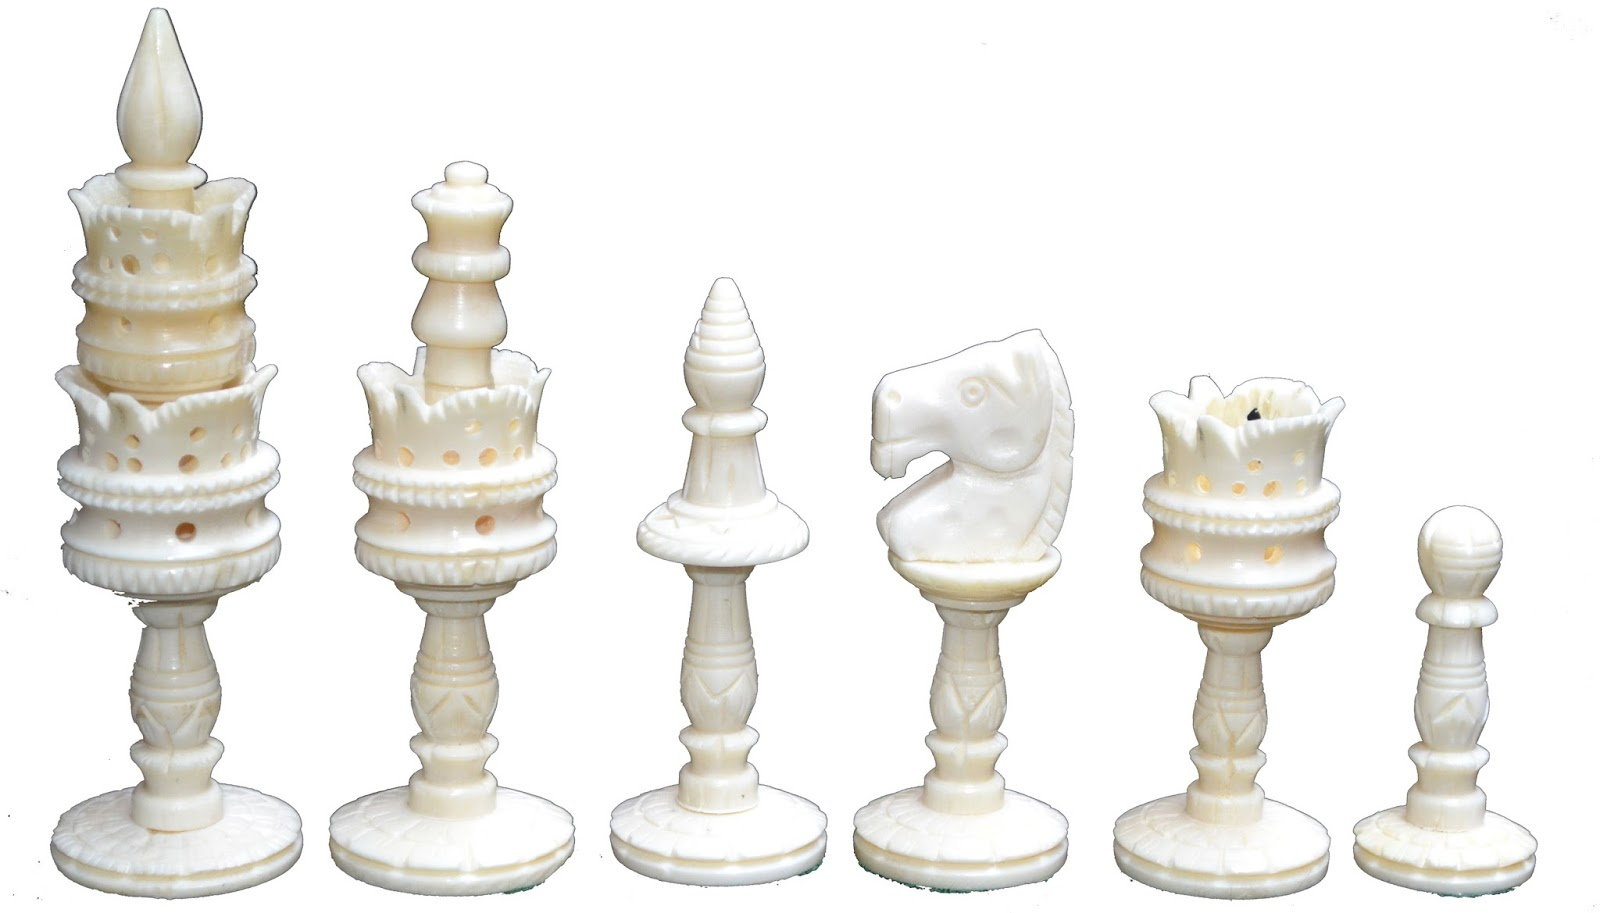 Chess Sets Wooden Azacus Wooden Chess Sets Azacus Brand Official Website  Indoemall